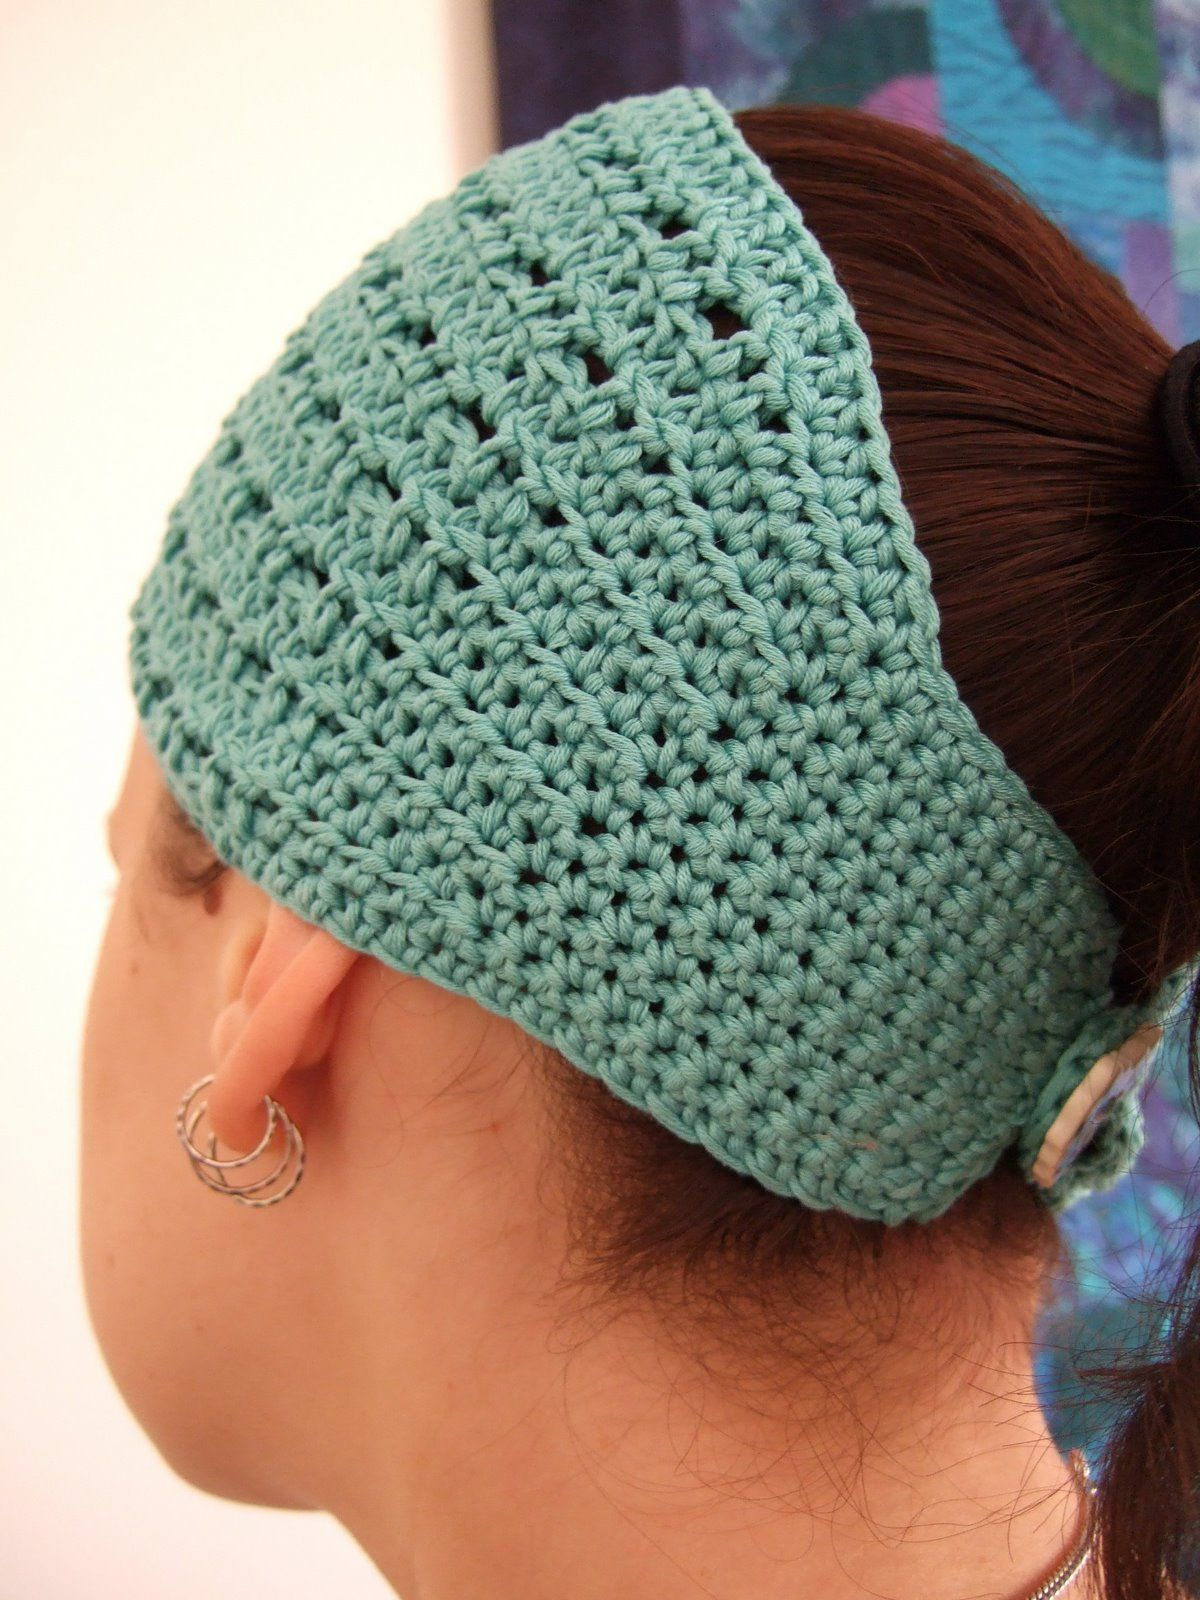 Free pattern : Nadie – crochet headband / hair wrap | Pinterest ...